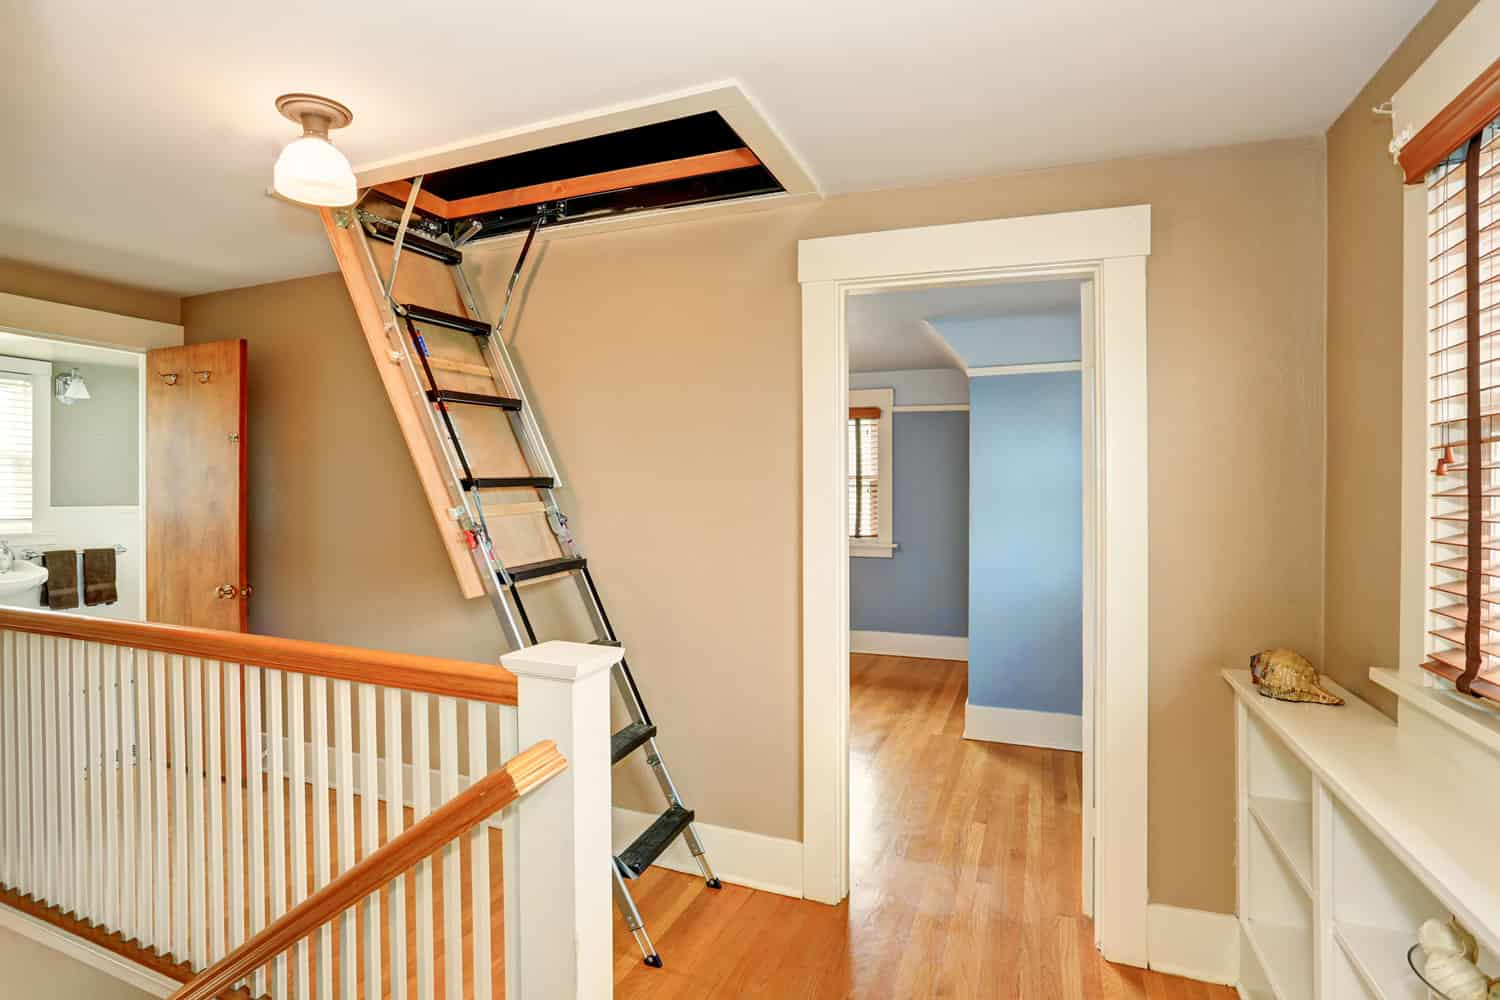 An attic ladder dropped down on a hallway of a rustic themed house